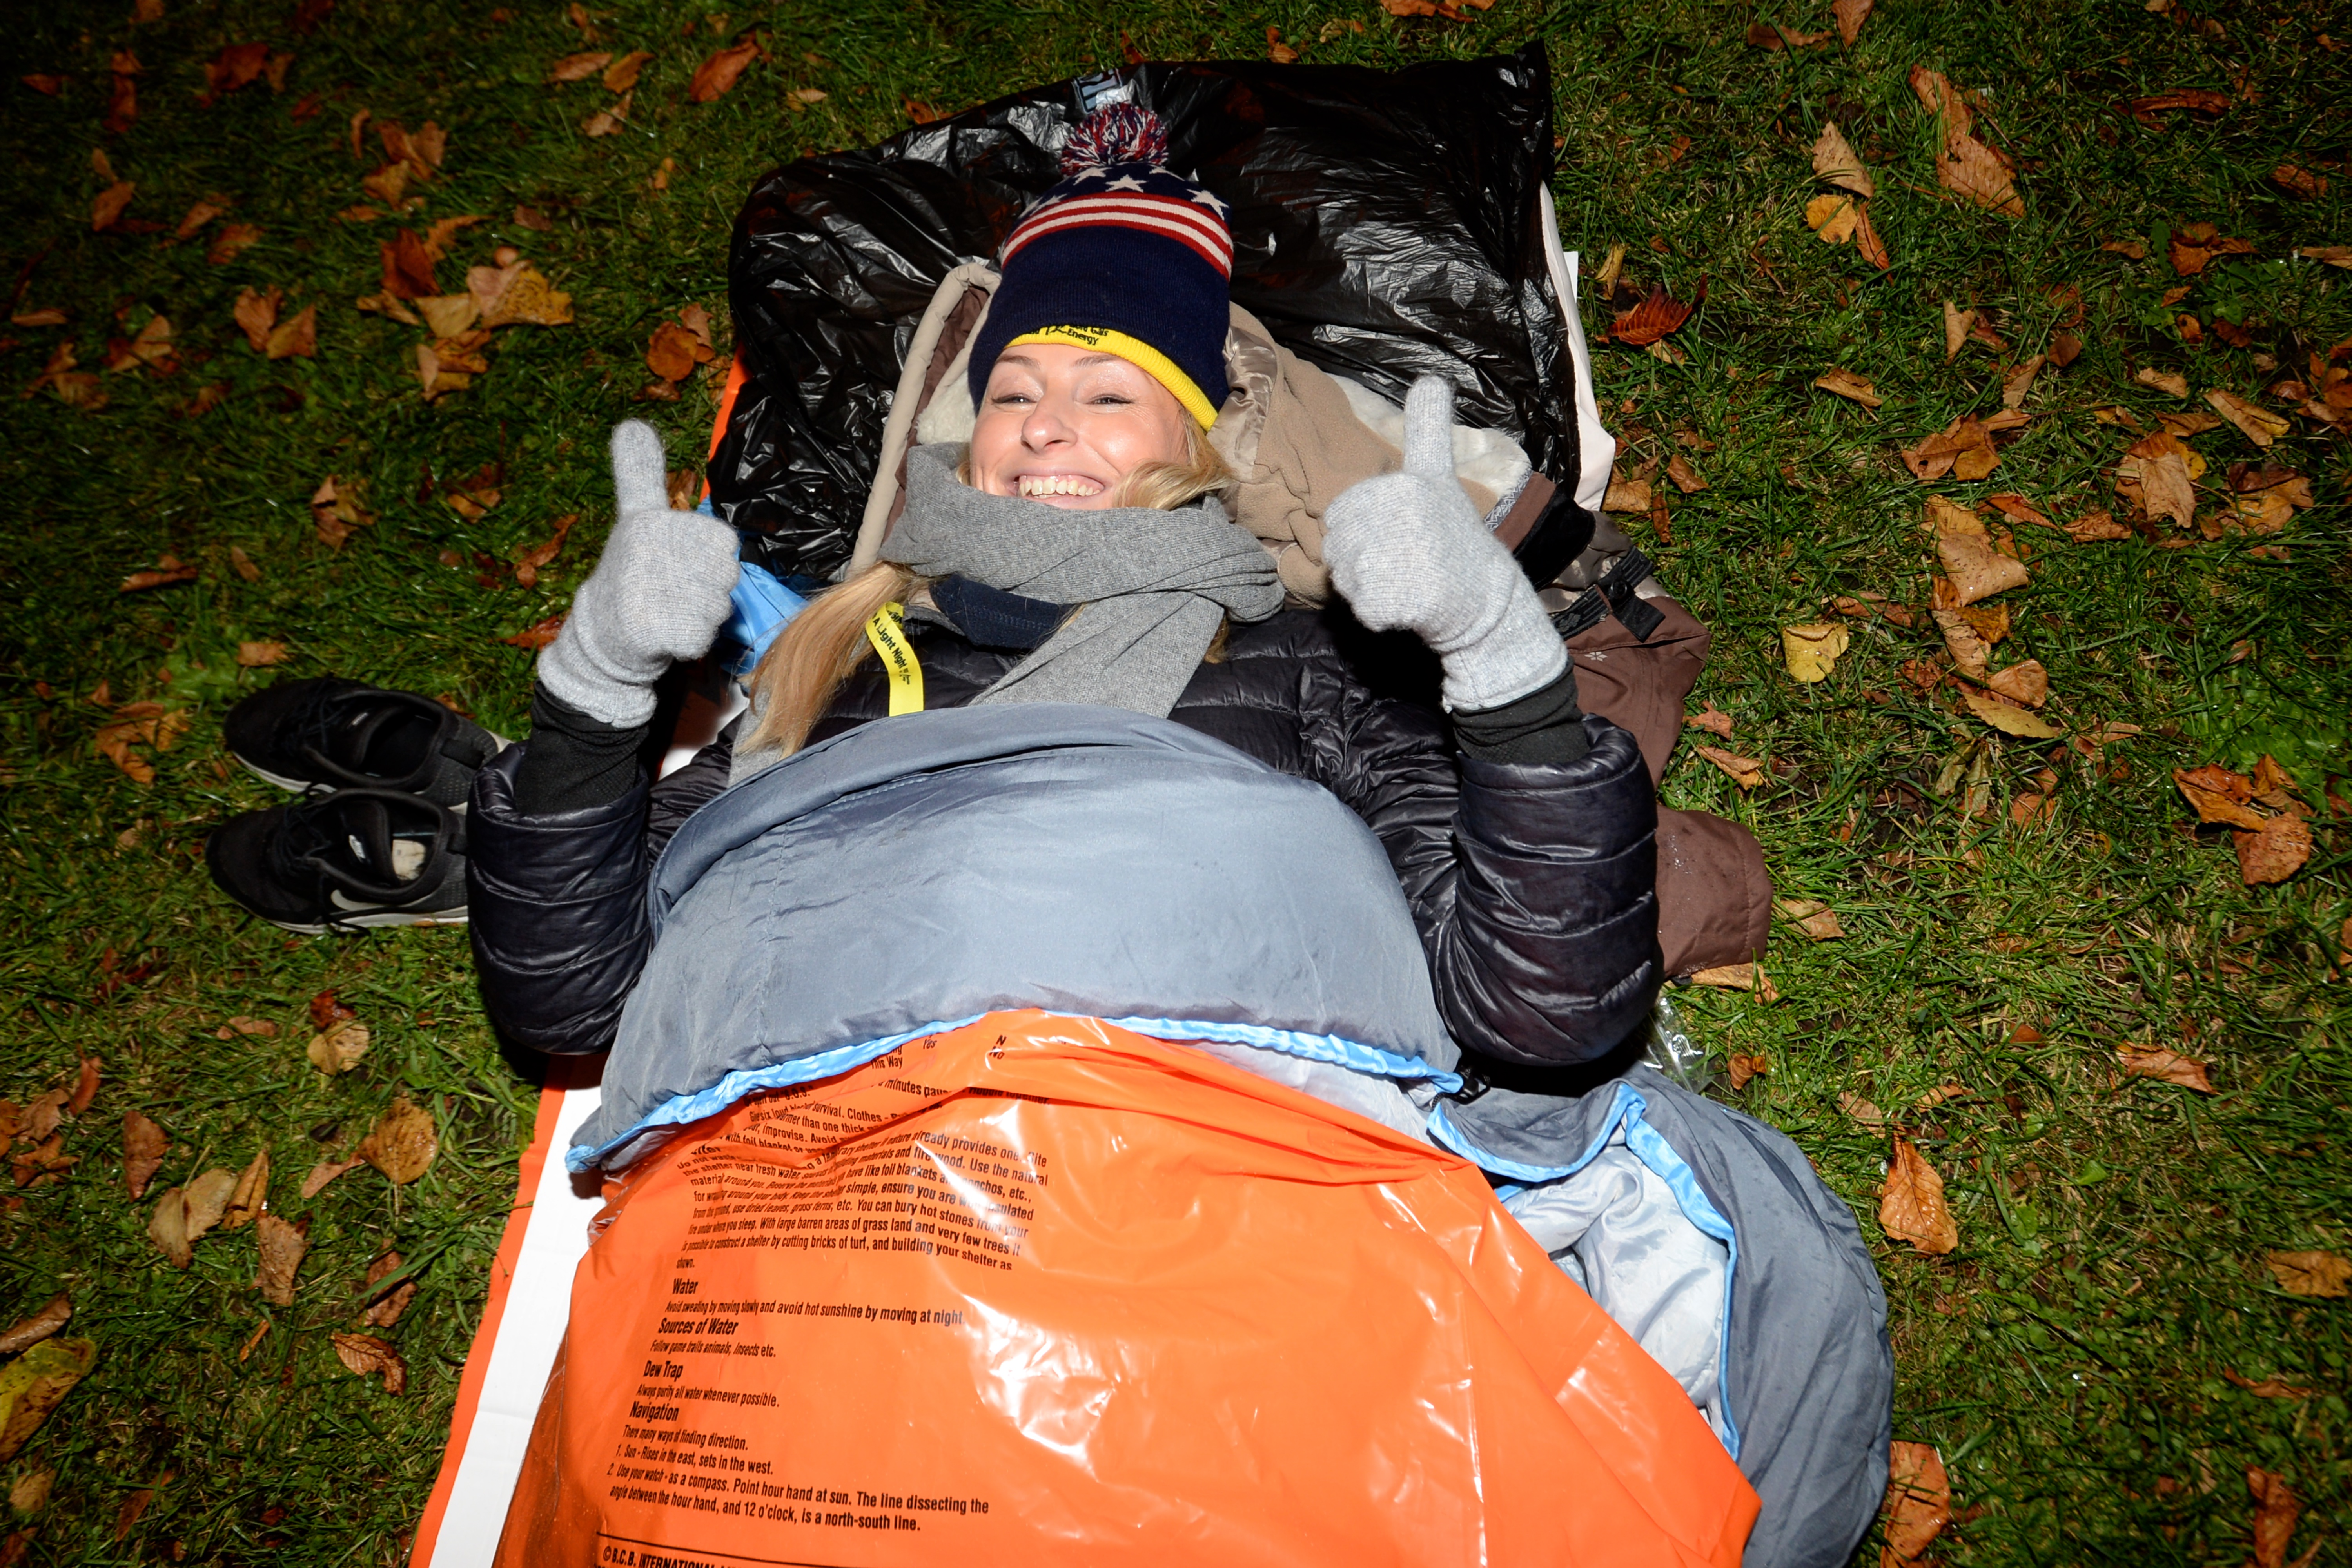 Woman giving a thumbs up while lying in her sleeping bag on the ground